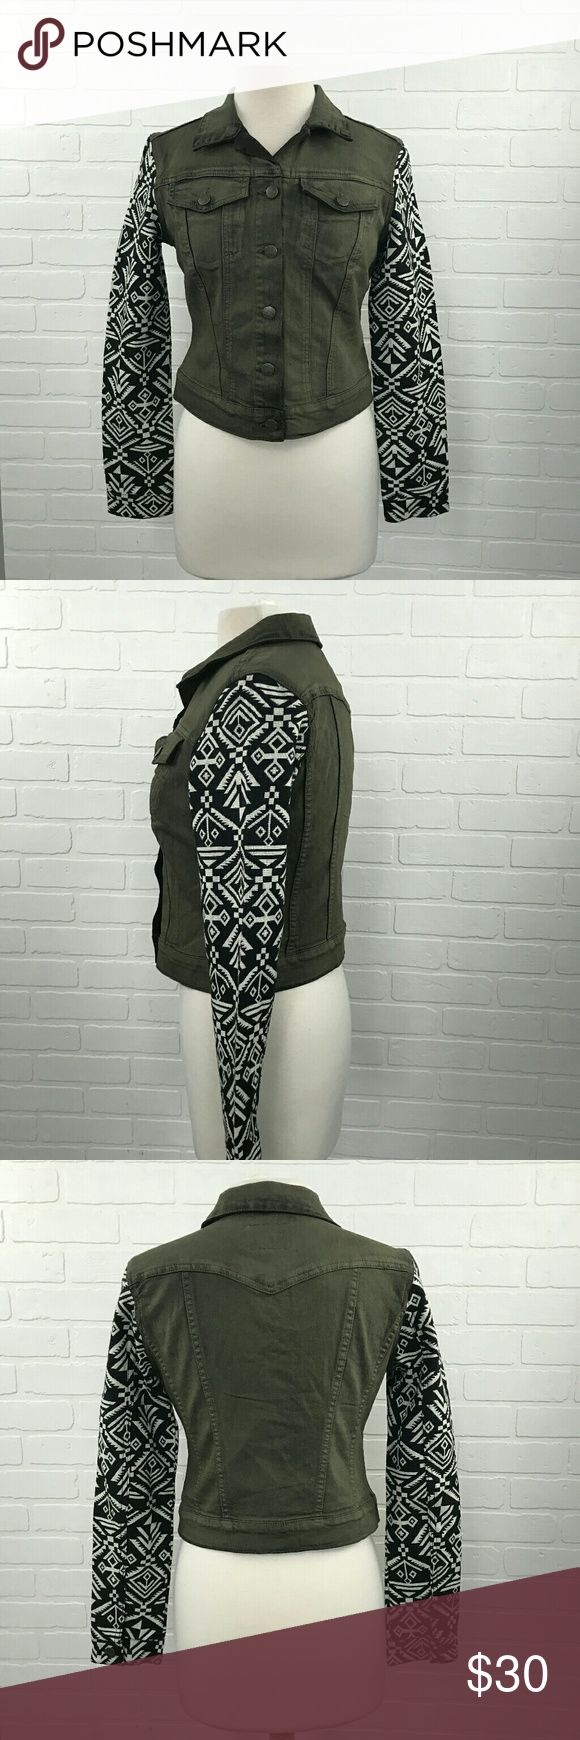 JS Jessica Simpson Pixie Light Weight Tribal Color        : Green Style         : Jacket Brand       : Jessica Simpson Size          : Women's Medium Materials : Cotton- polyester Inventory  : Q49 Jessica Simpson Jackets & Coats